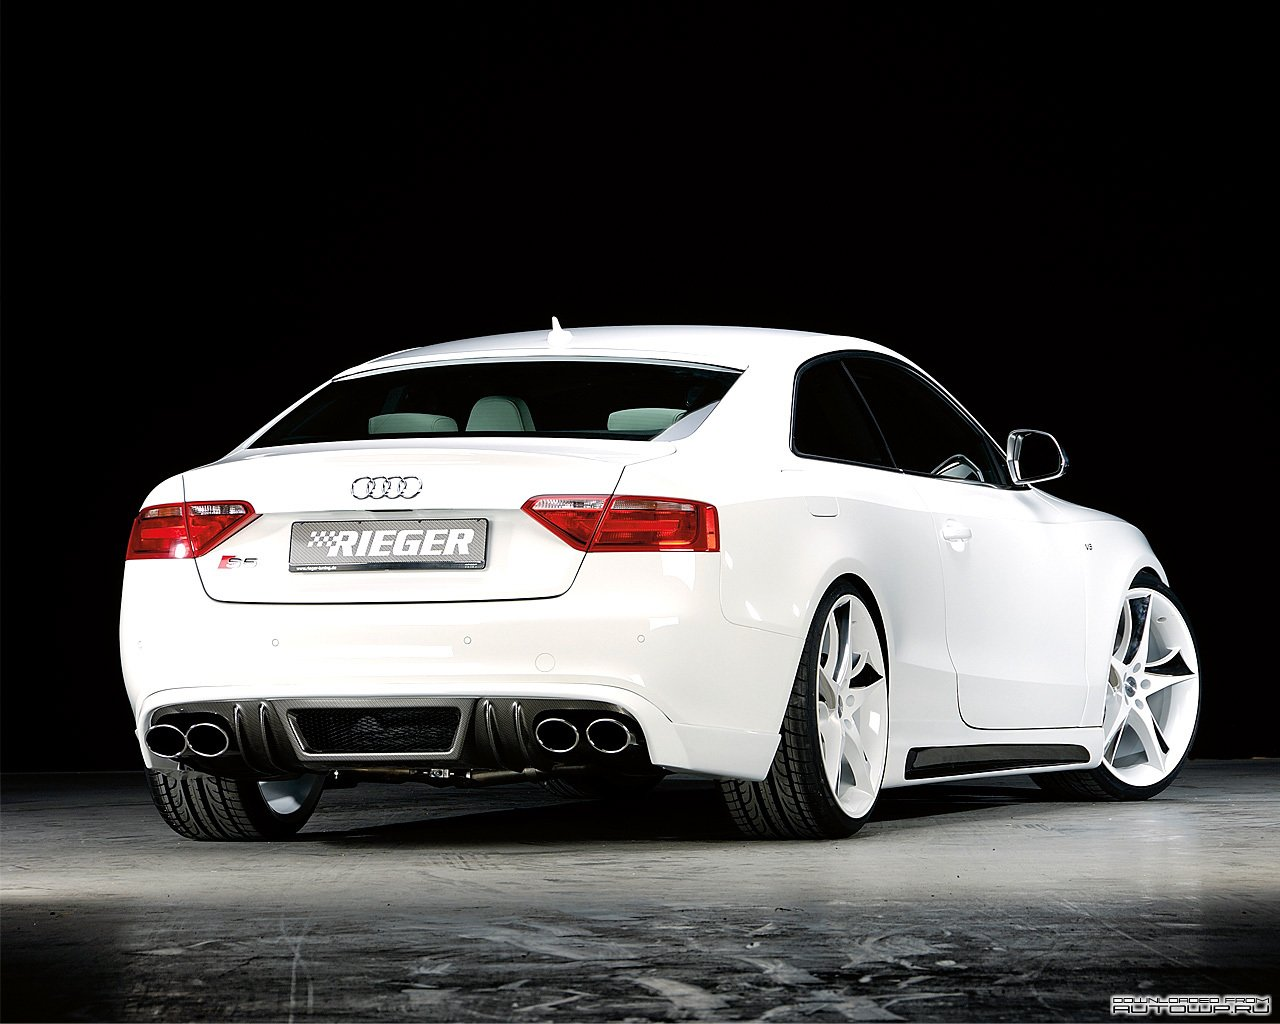 Latest Audi S5 Wallpaper Cars Wallpapers And Pictures Car Images Free Download